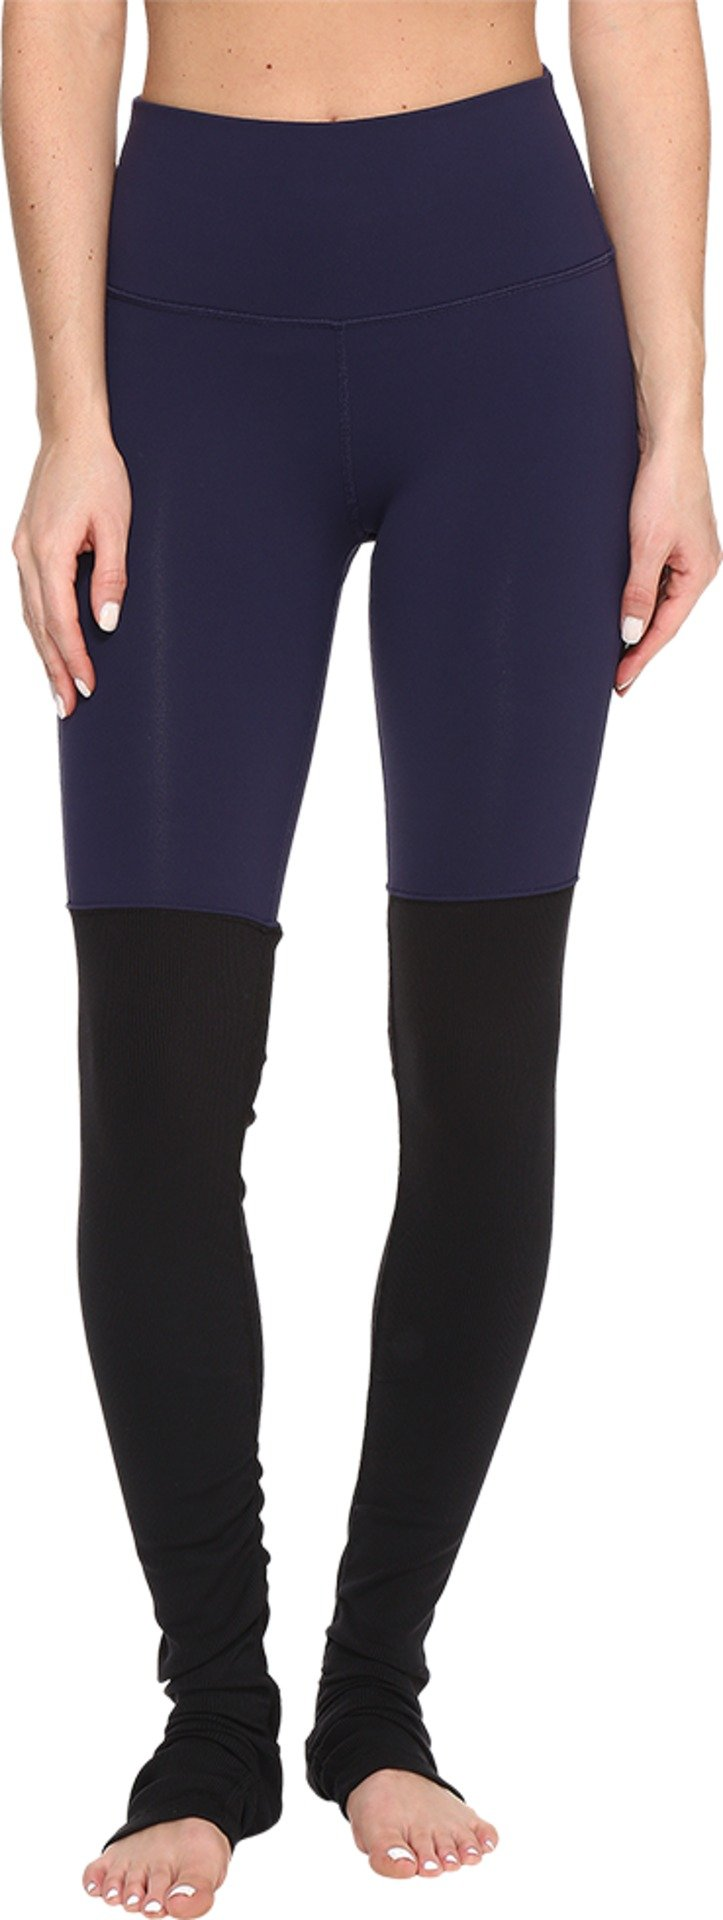 ALO Women's High Waisted Goddess Leggings Rich Navy/Black Small 33 by ALO Sport (Image #1)